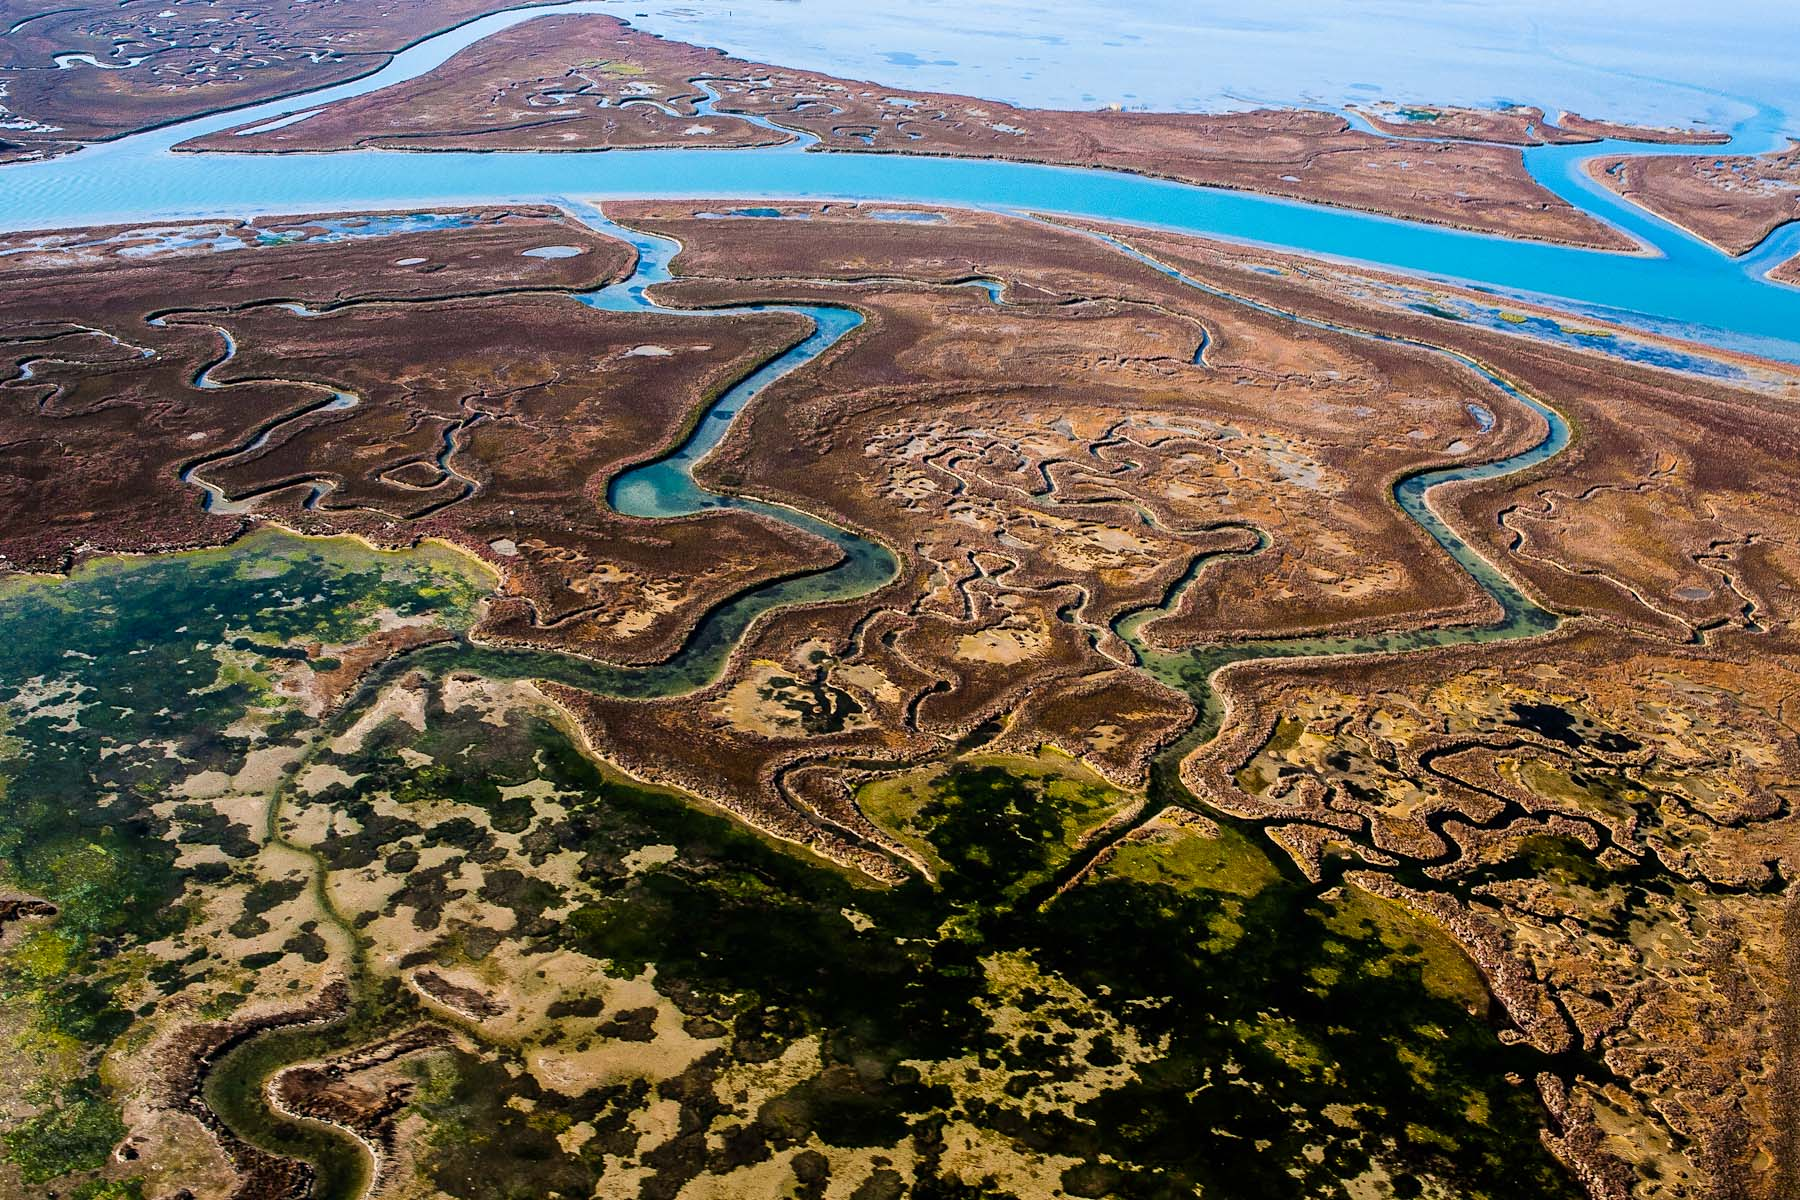 Typical lagoon structures consist of mudlats, salt marshes and meandering canals used to navigate through to the islands in the lagoon.